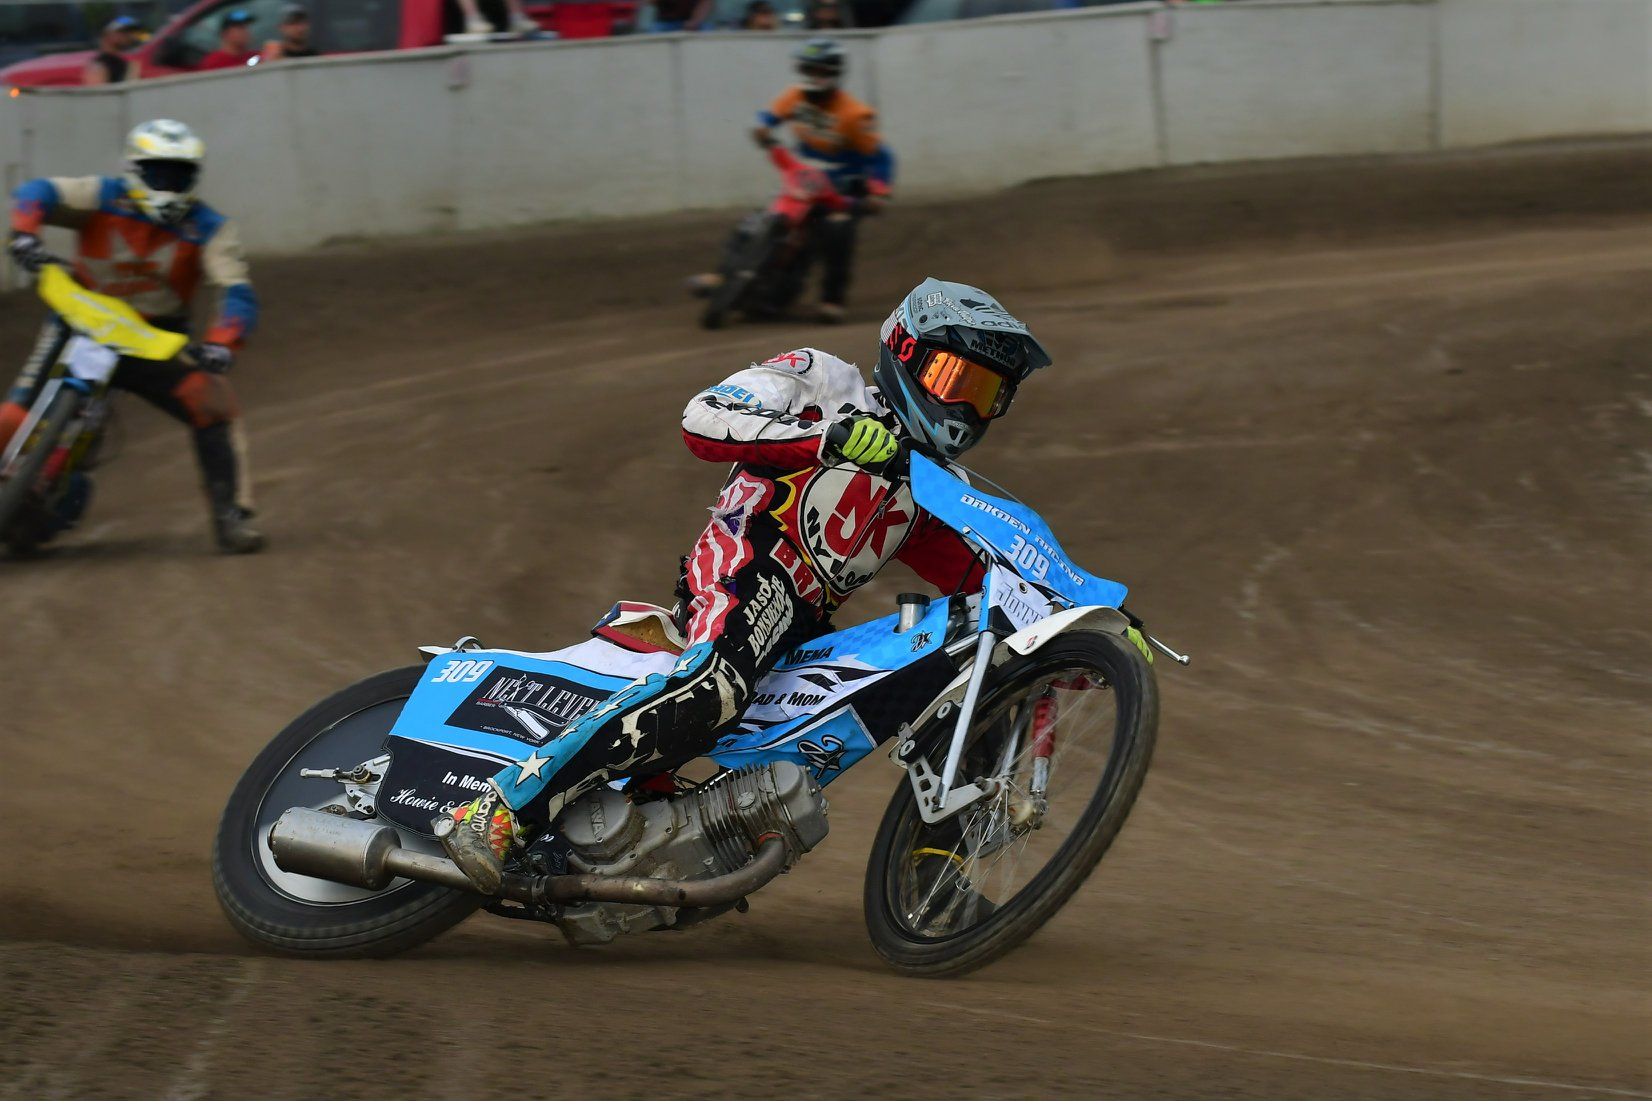 Speedway race and fundraiser organized by AKZ Speed Monkey Poland